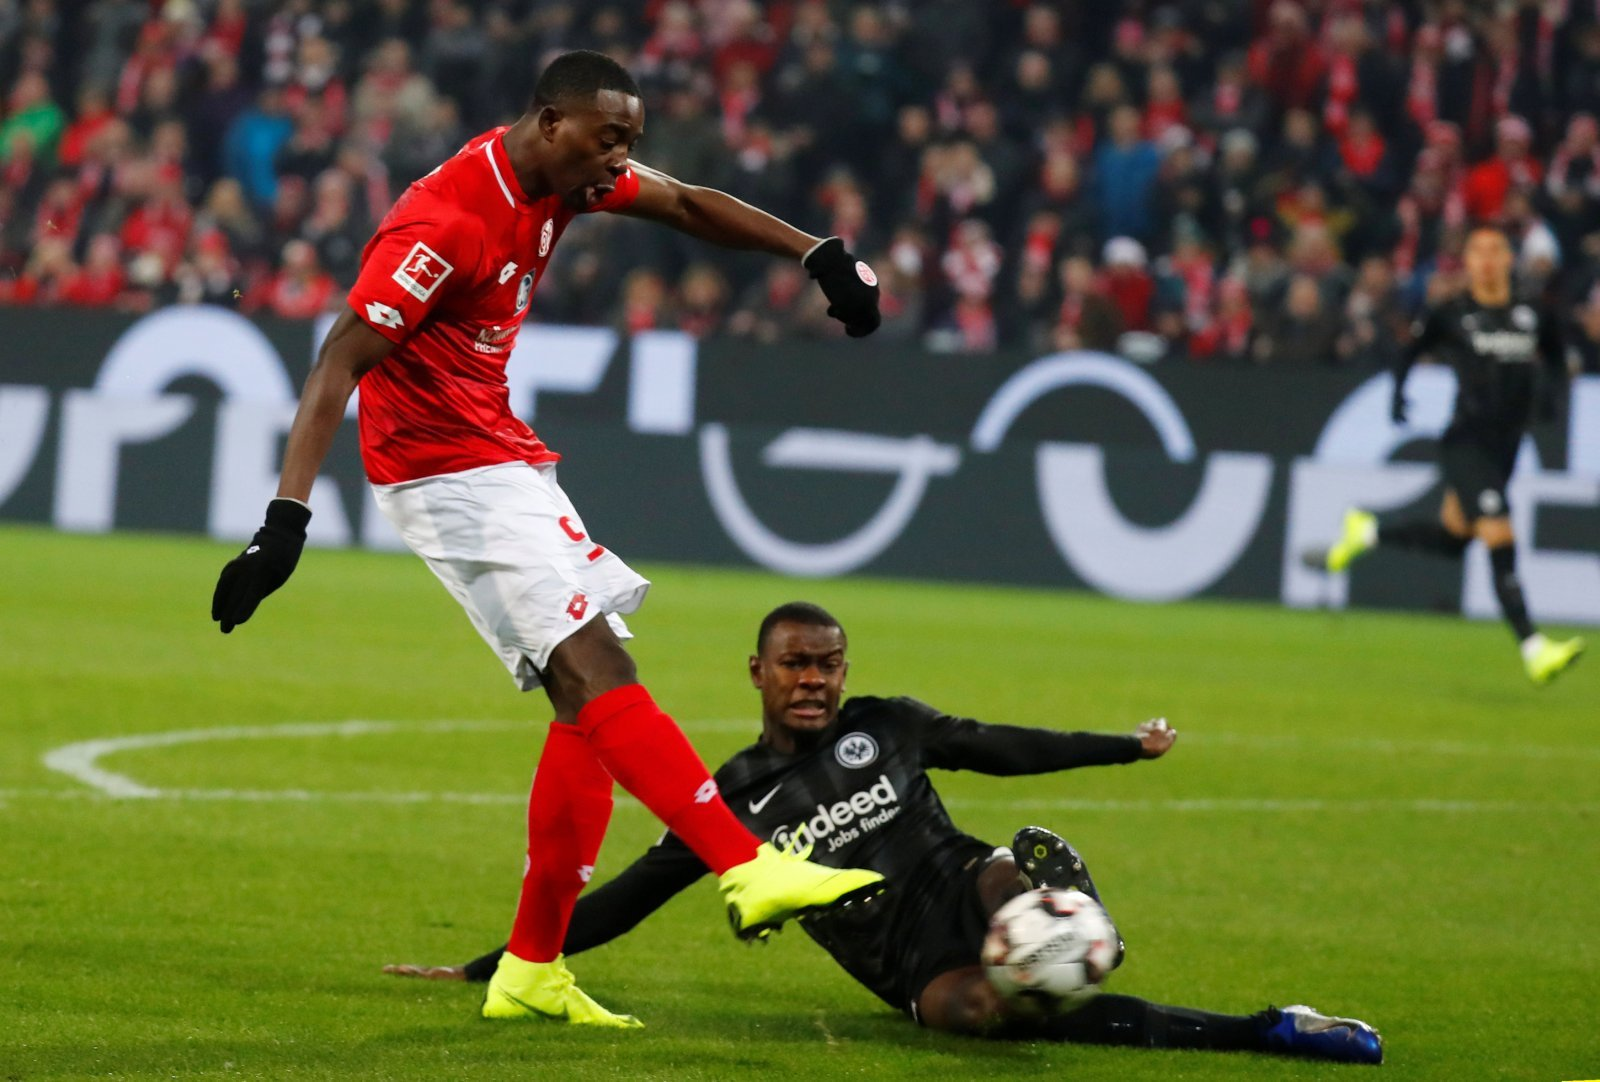 Mainz's Jean-Philippe Mateta shoots at goal as Eintracht Frankfurt's Evan N'Dicka challenges